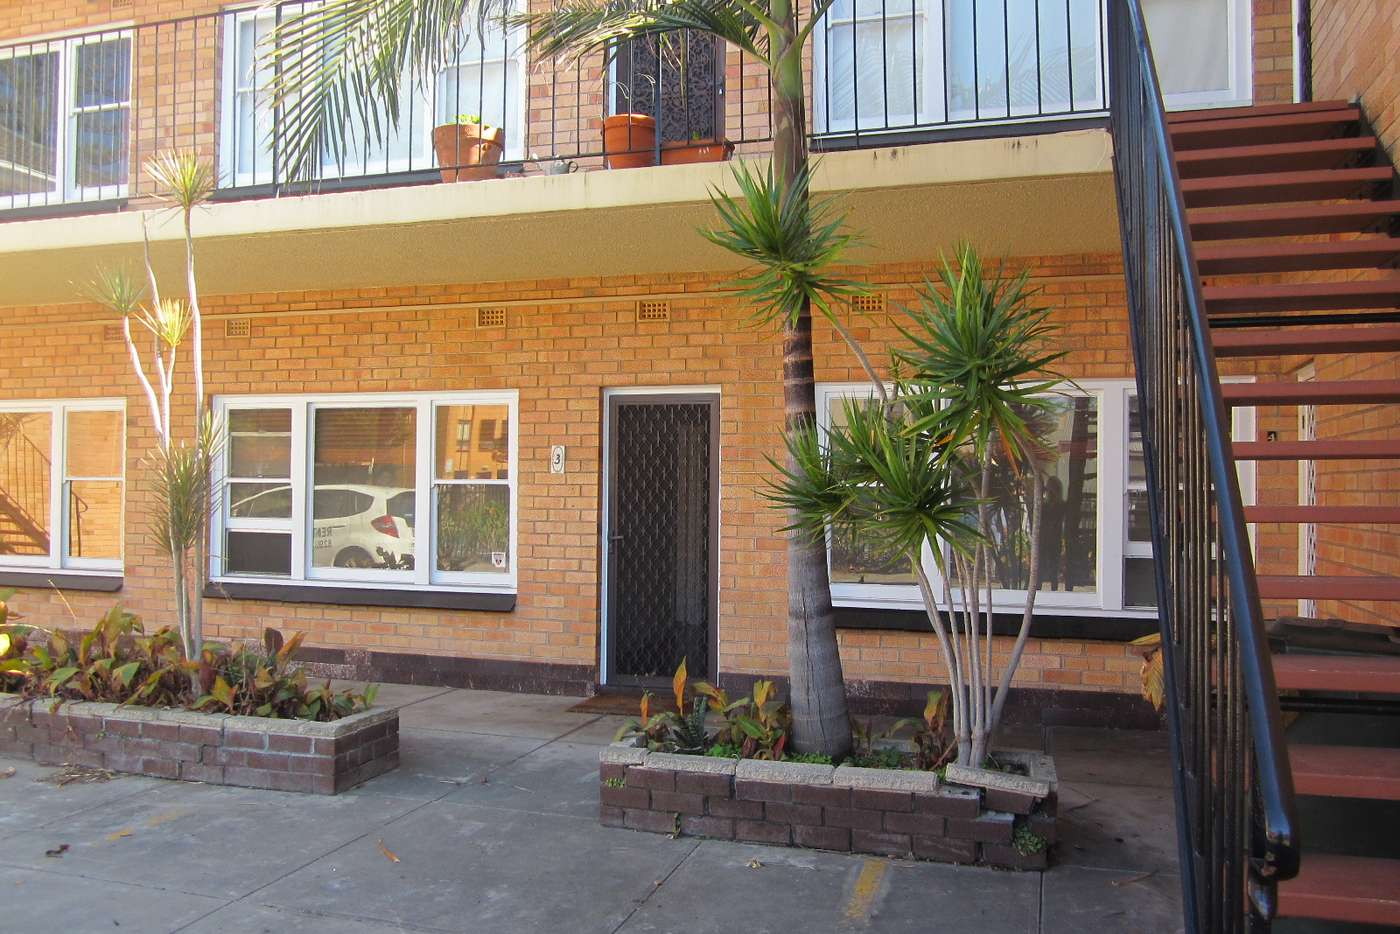 Main view of Homely unit listing, 3/55 Gordon St, Glenelg SA 5045